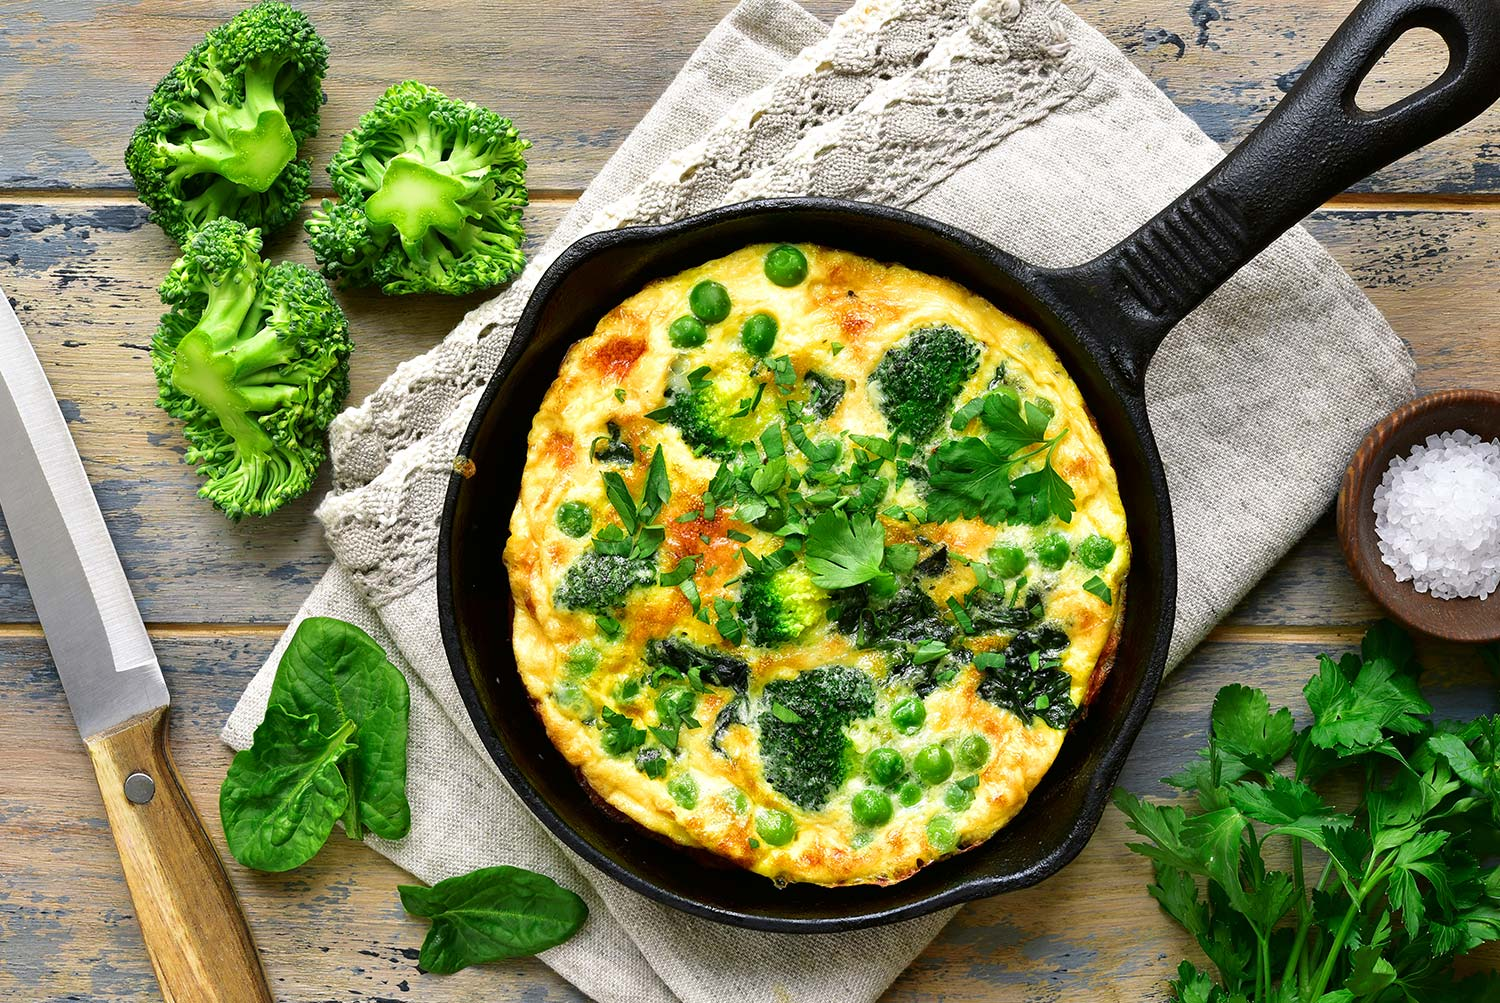 mvfr-recipes-one-pan-frittata.jpg